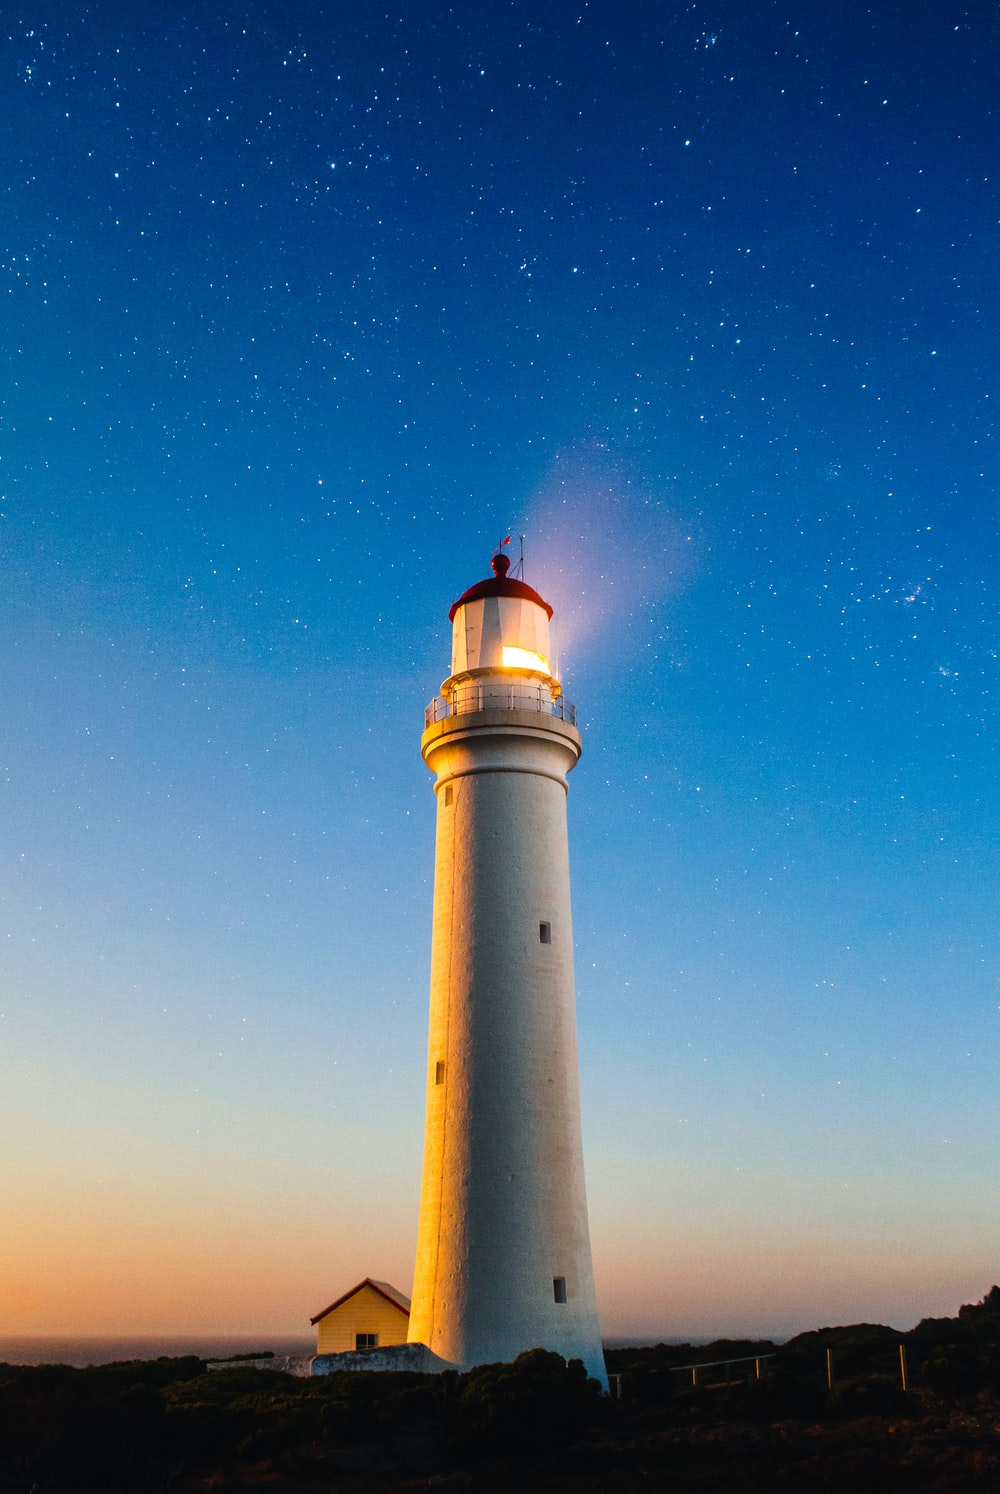 Lighthouse, stars, lock screen background and wallpaper   HD